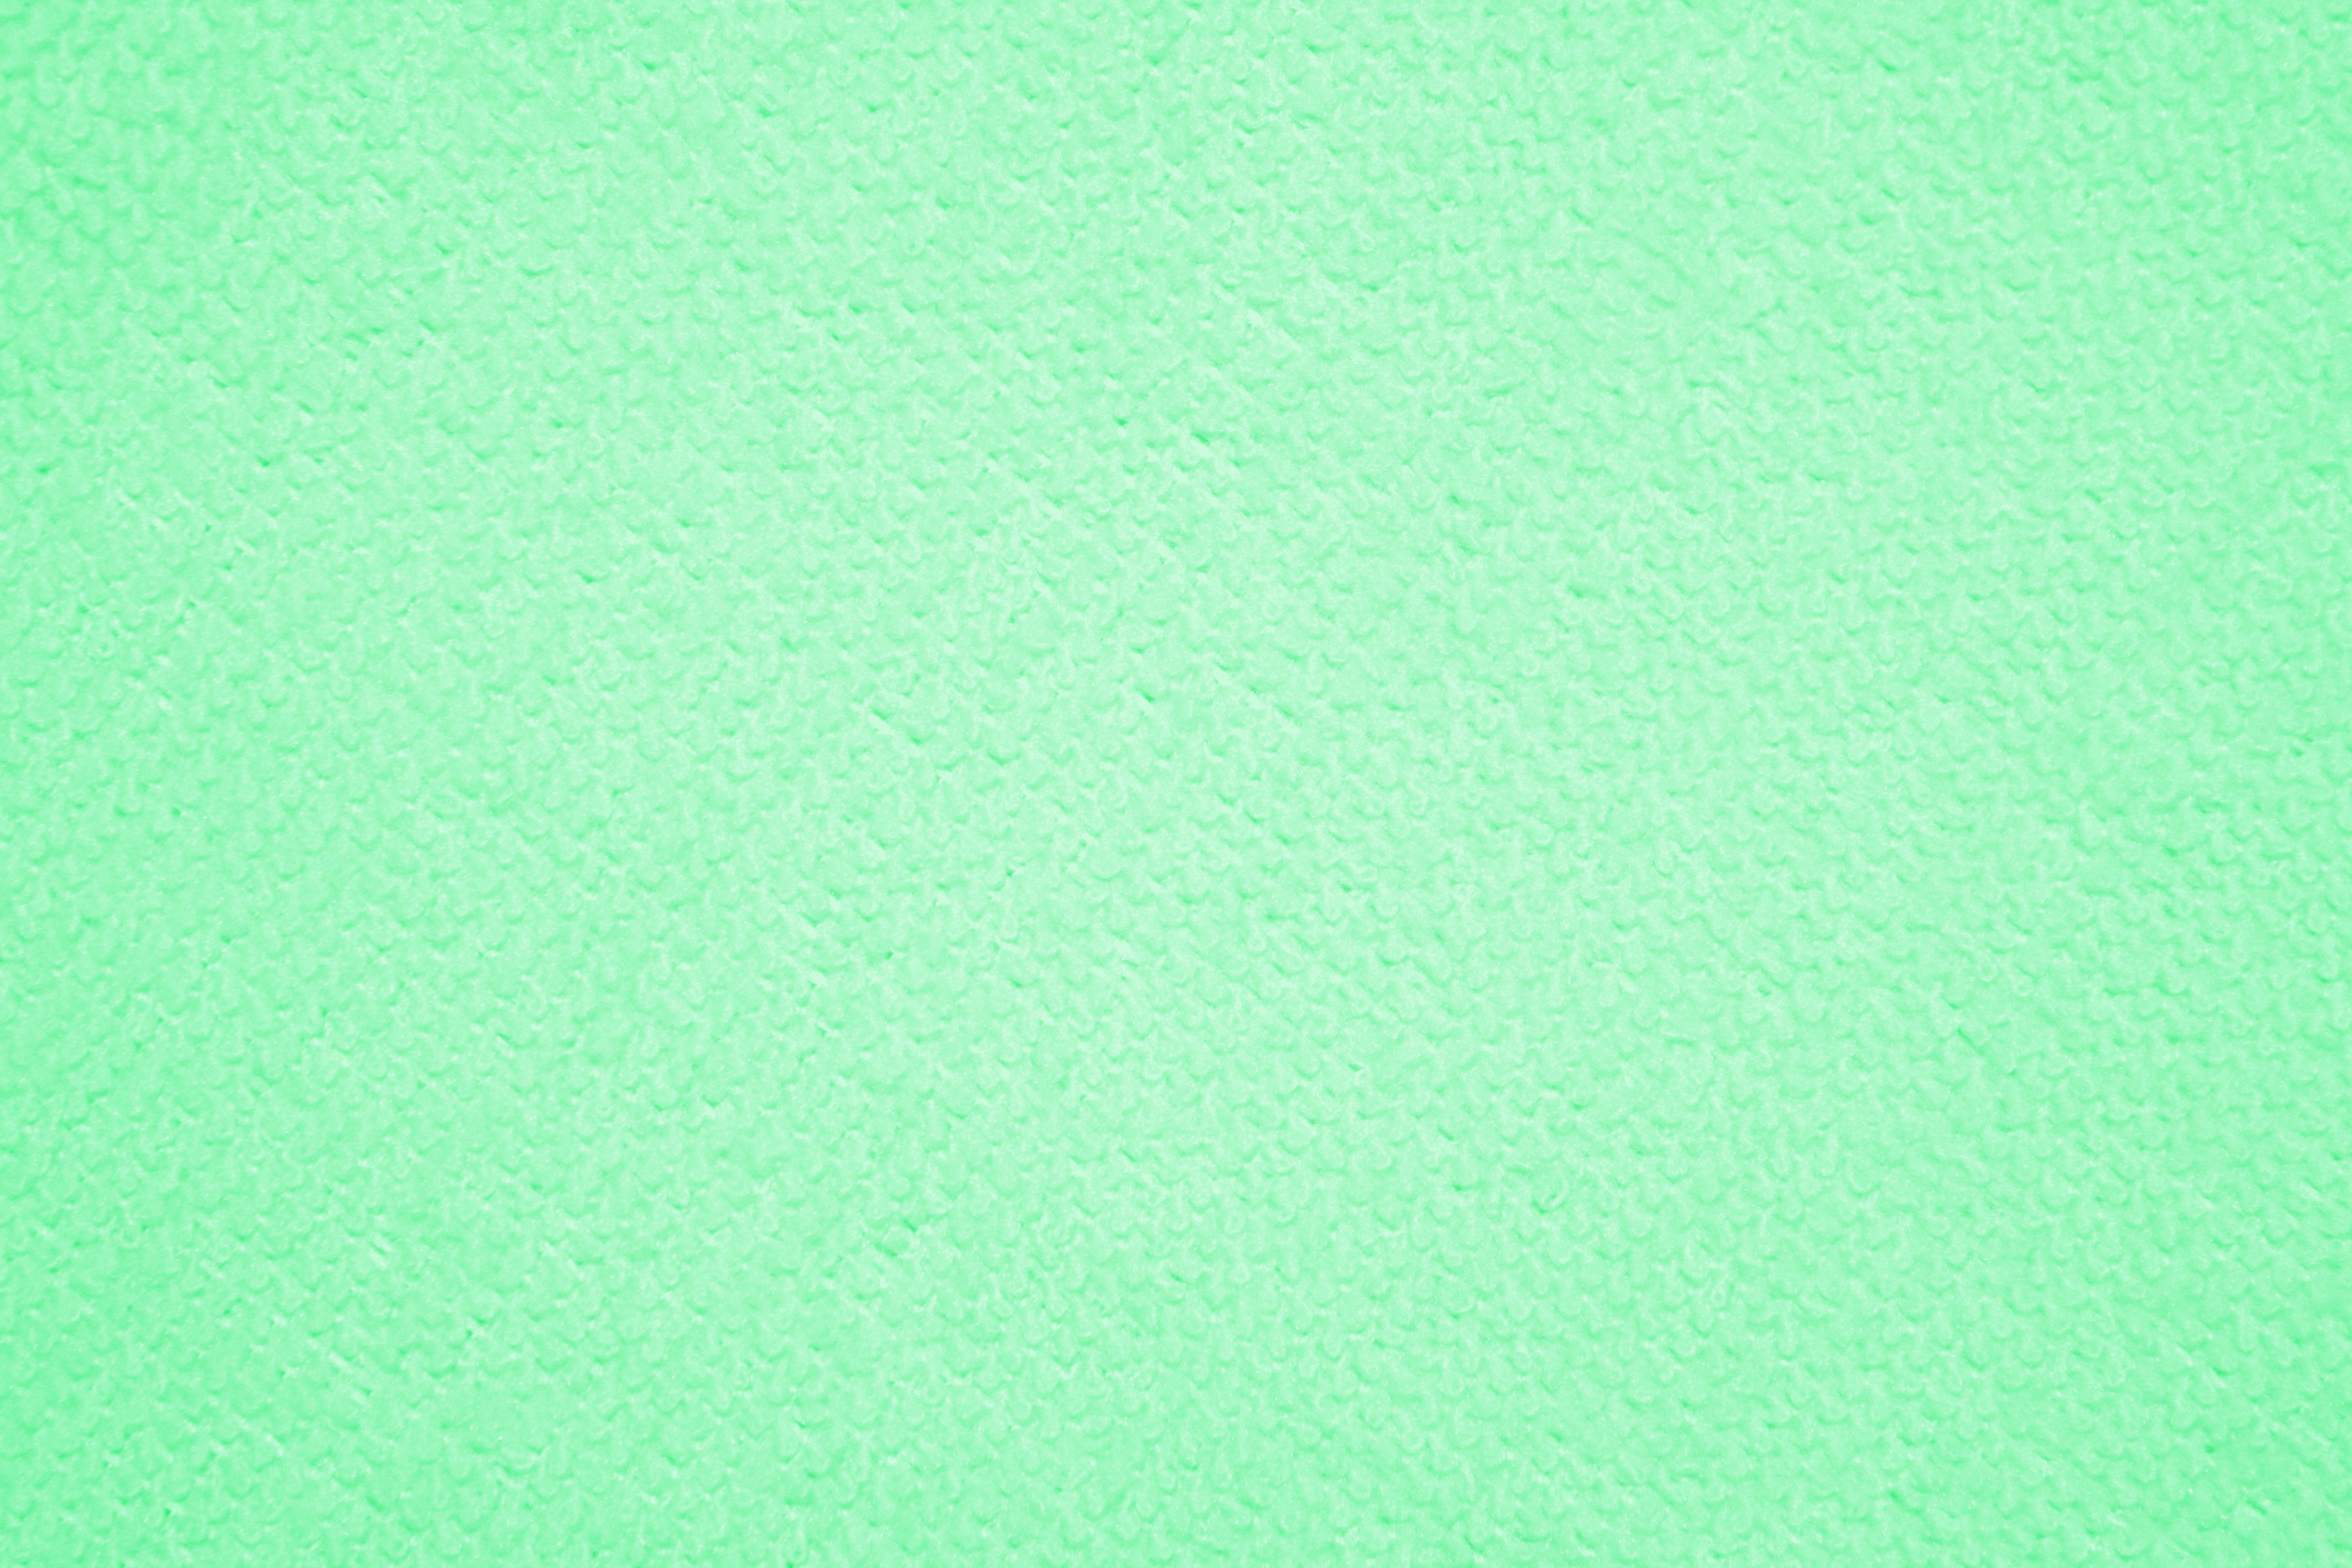 Light Green Microfiber Cloth Fabric Texture Picture Photograph 3600x2400